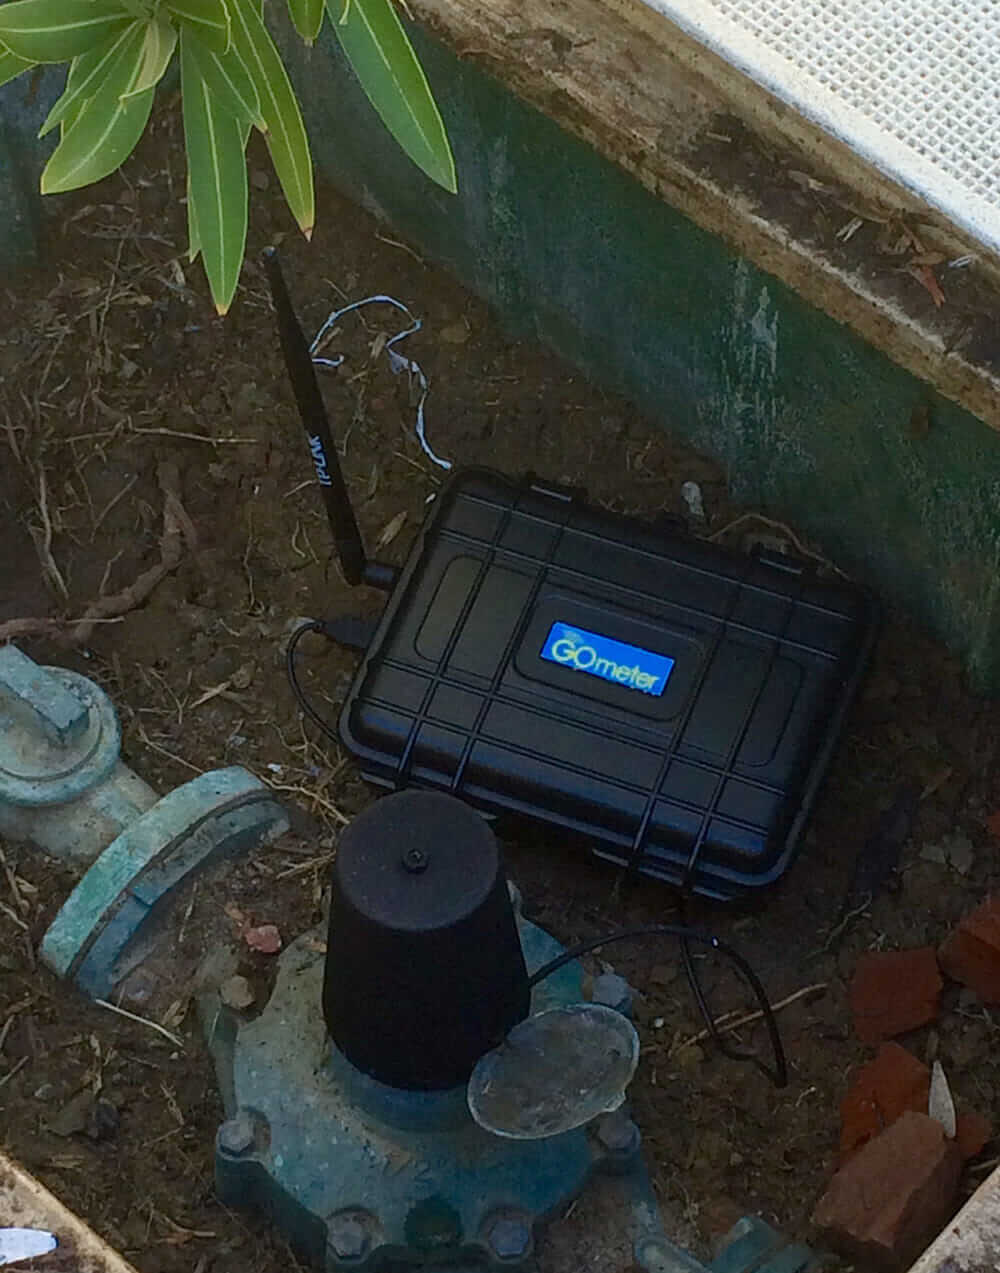 A GOmeter device installed on an existing water meter. Courtesy GOmeter.